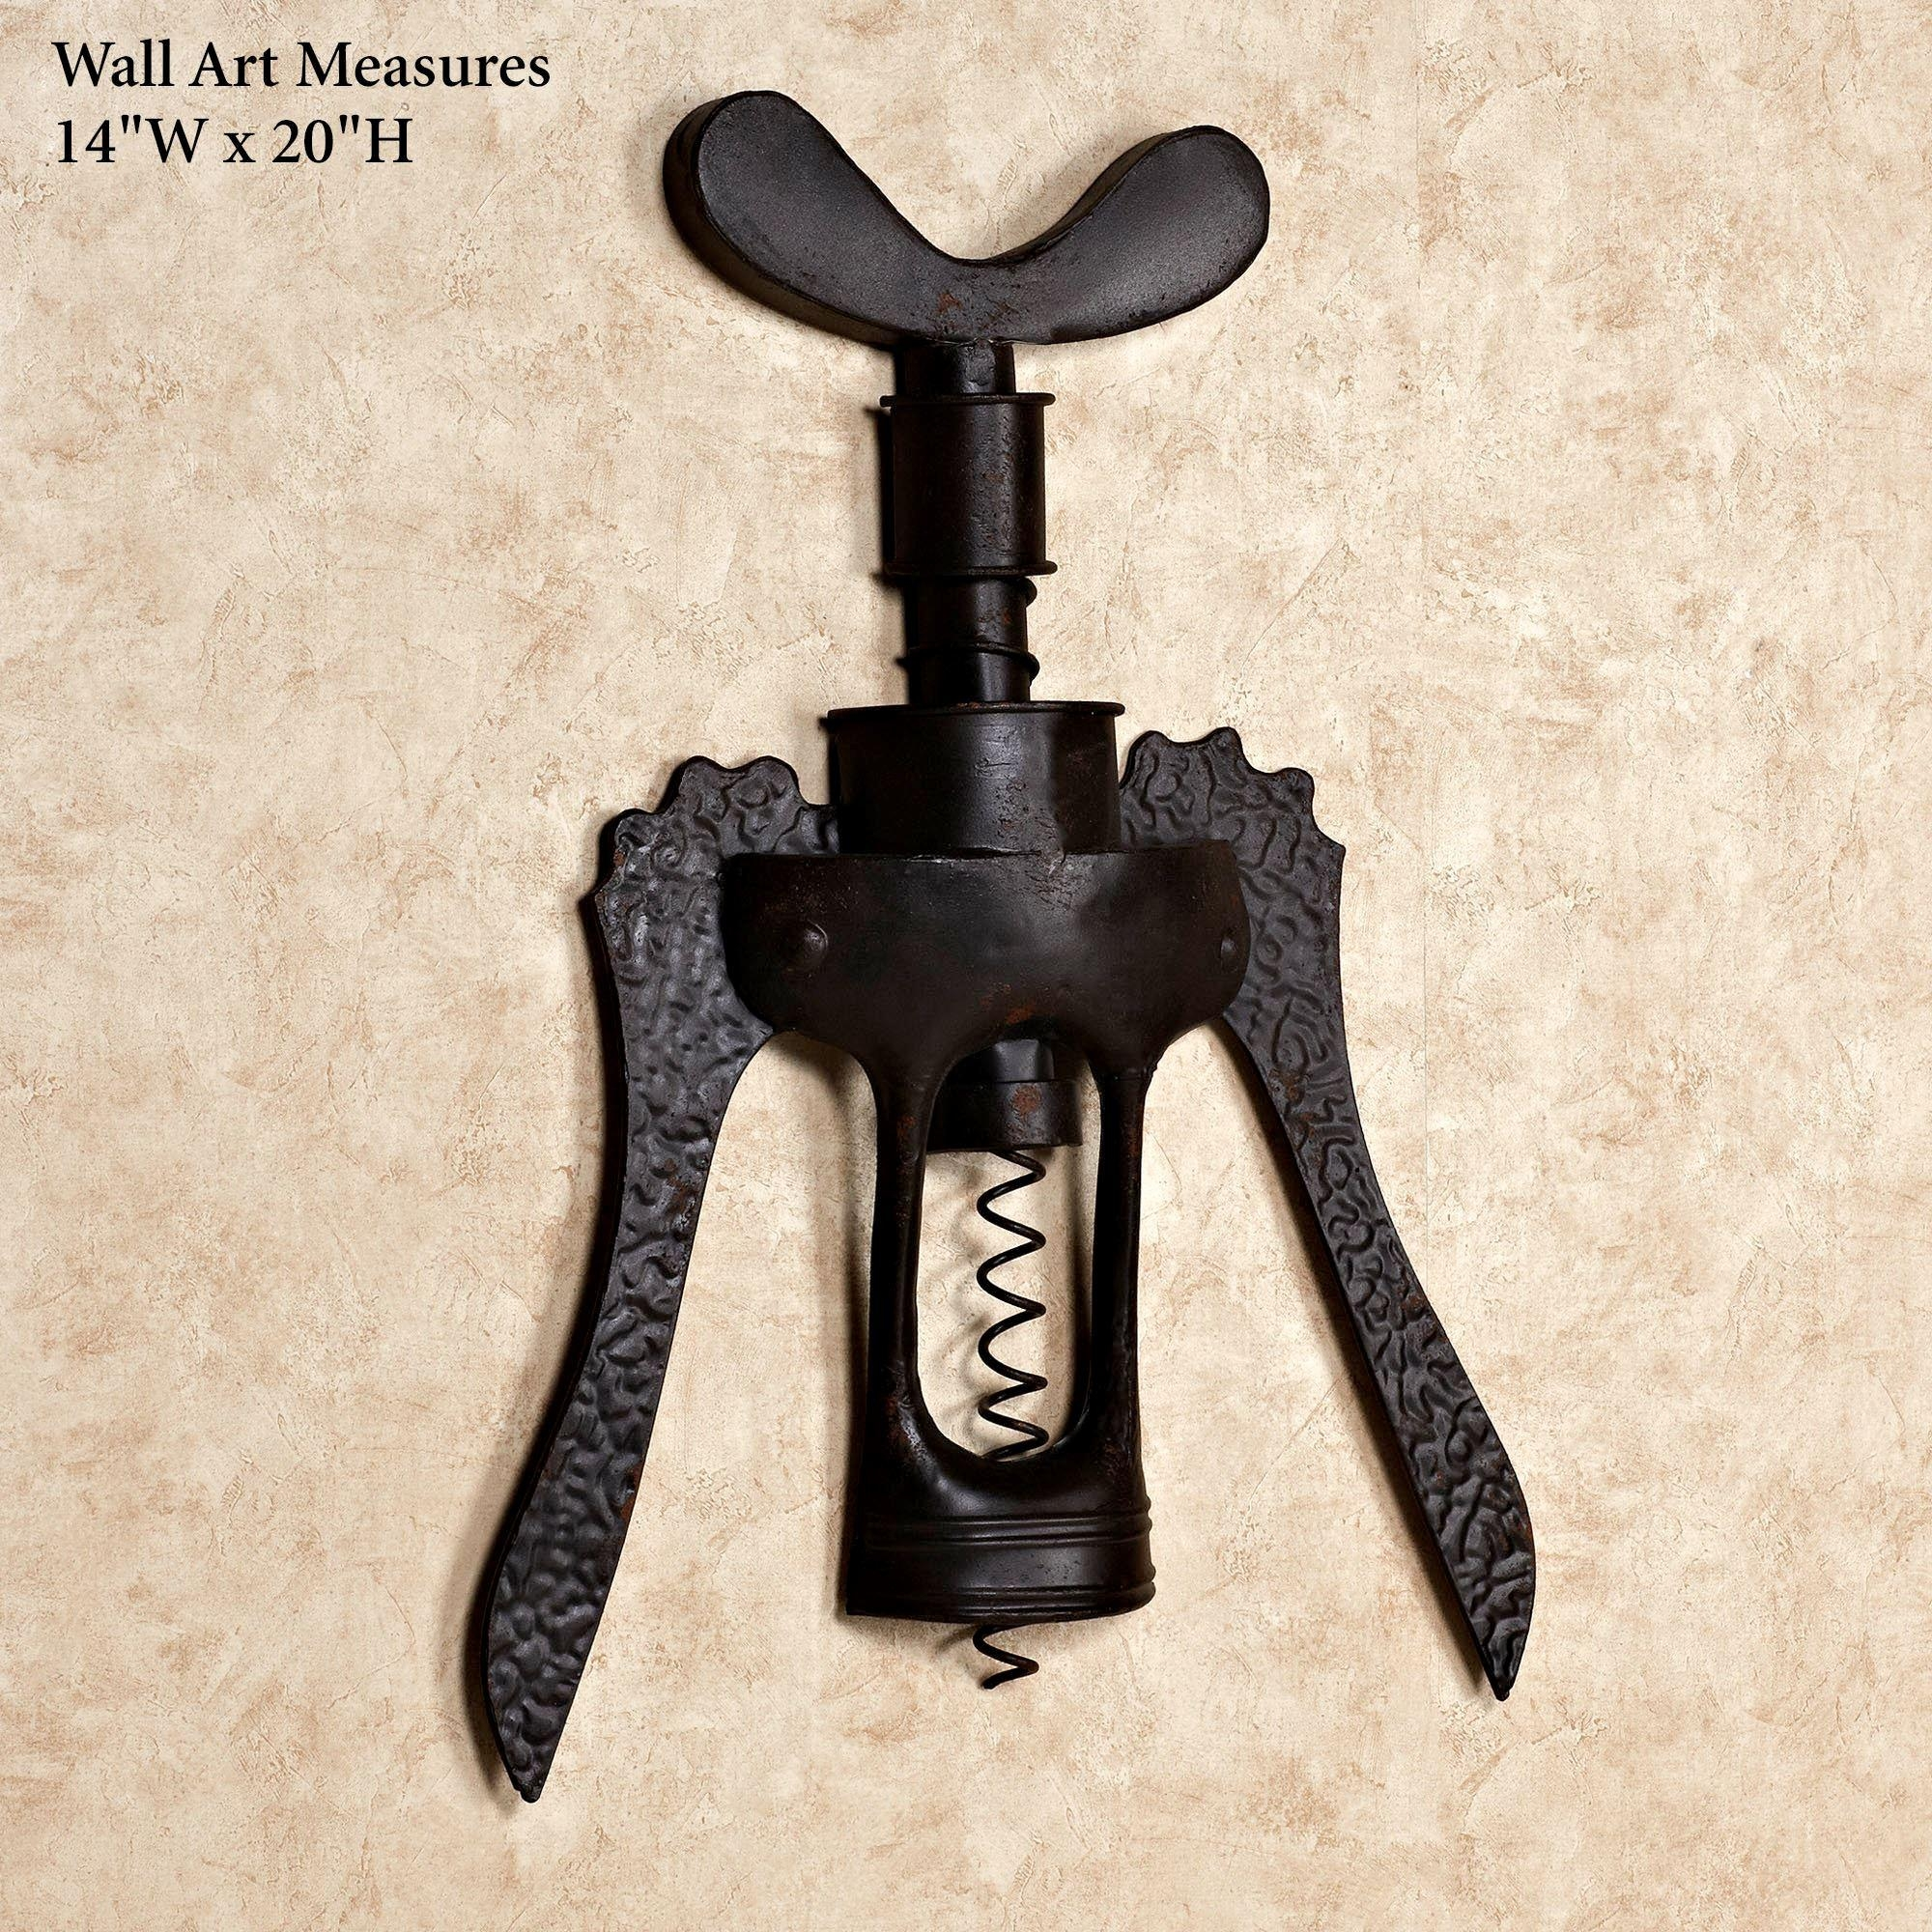 Antique Wine Corkscrew Iron Wall Art Throughout Wine Theme Wall Art (Image 1 of 20)